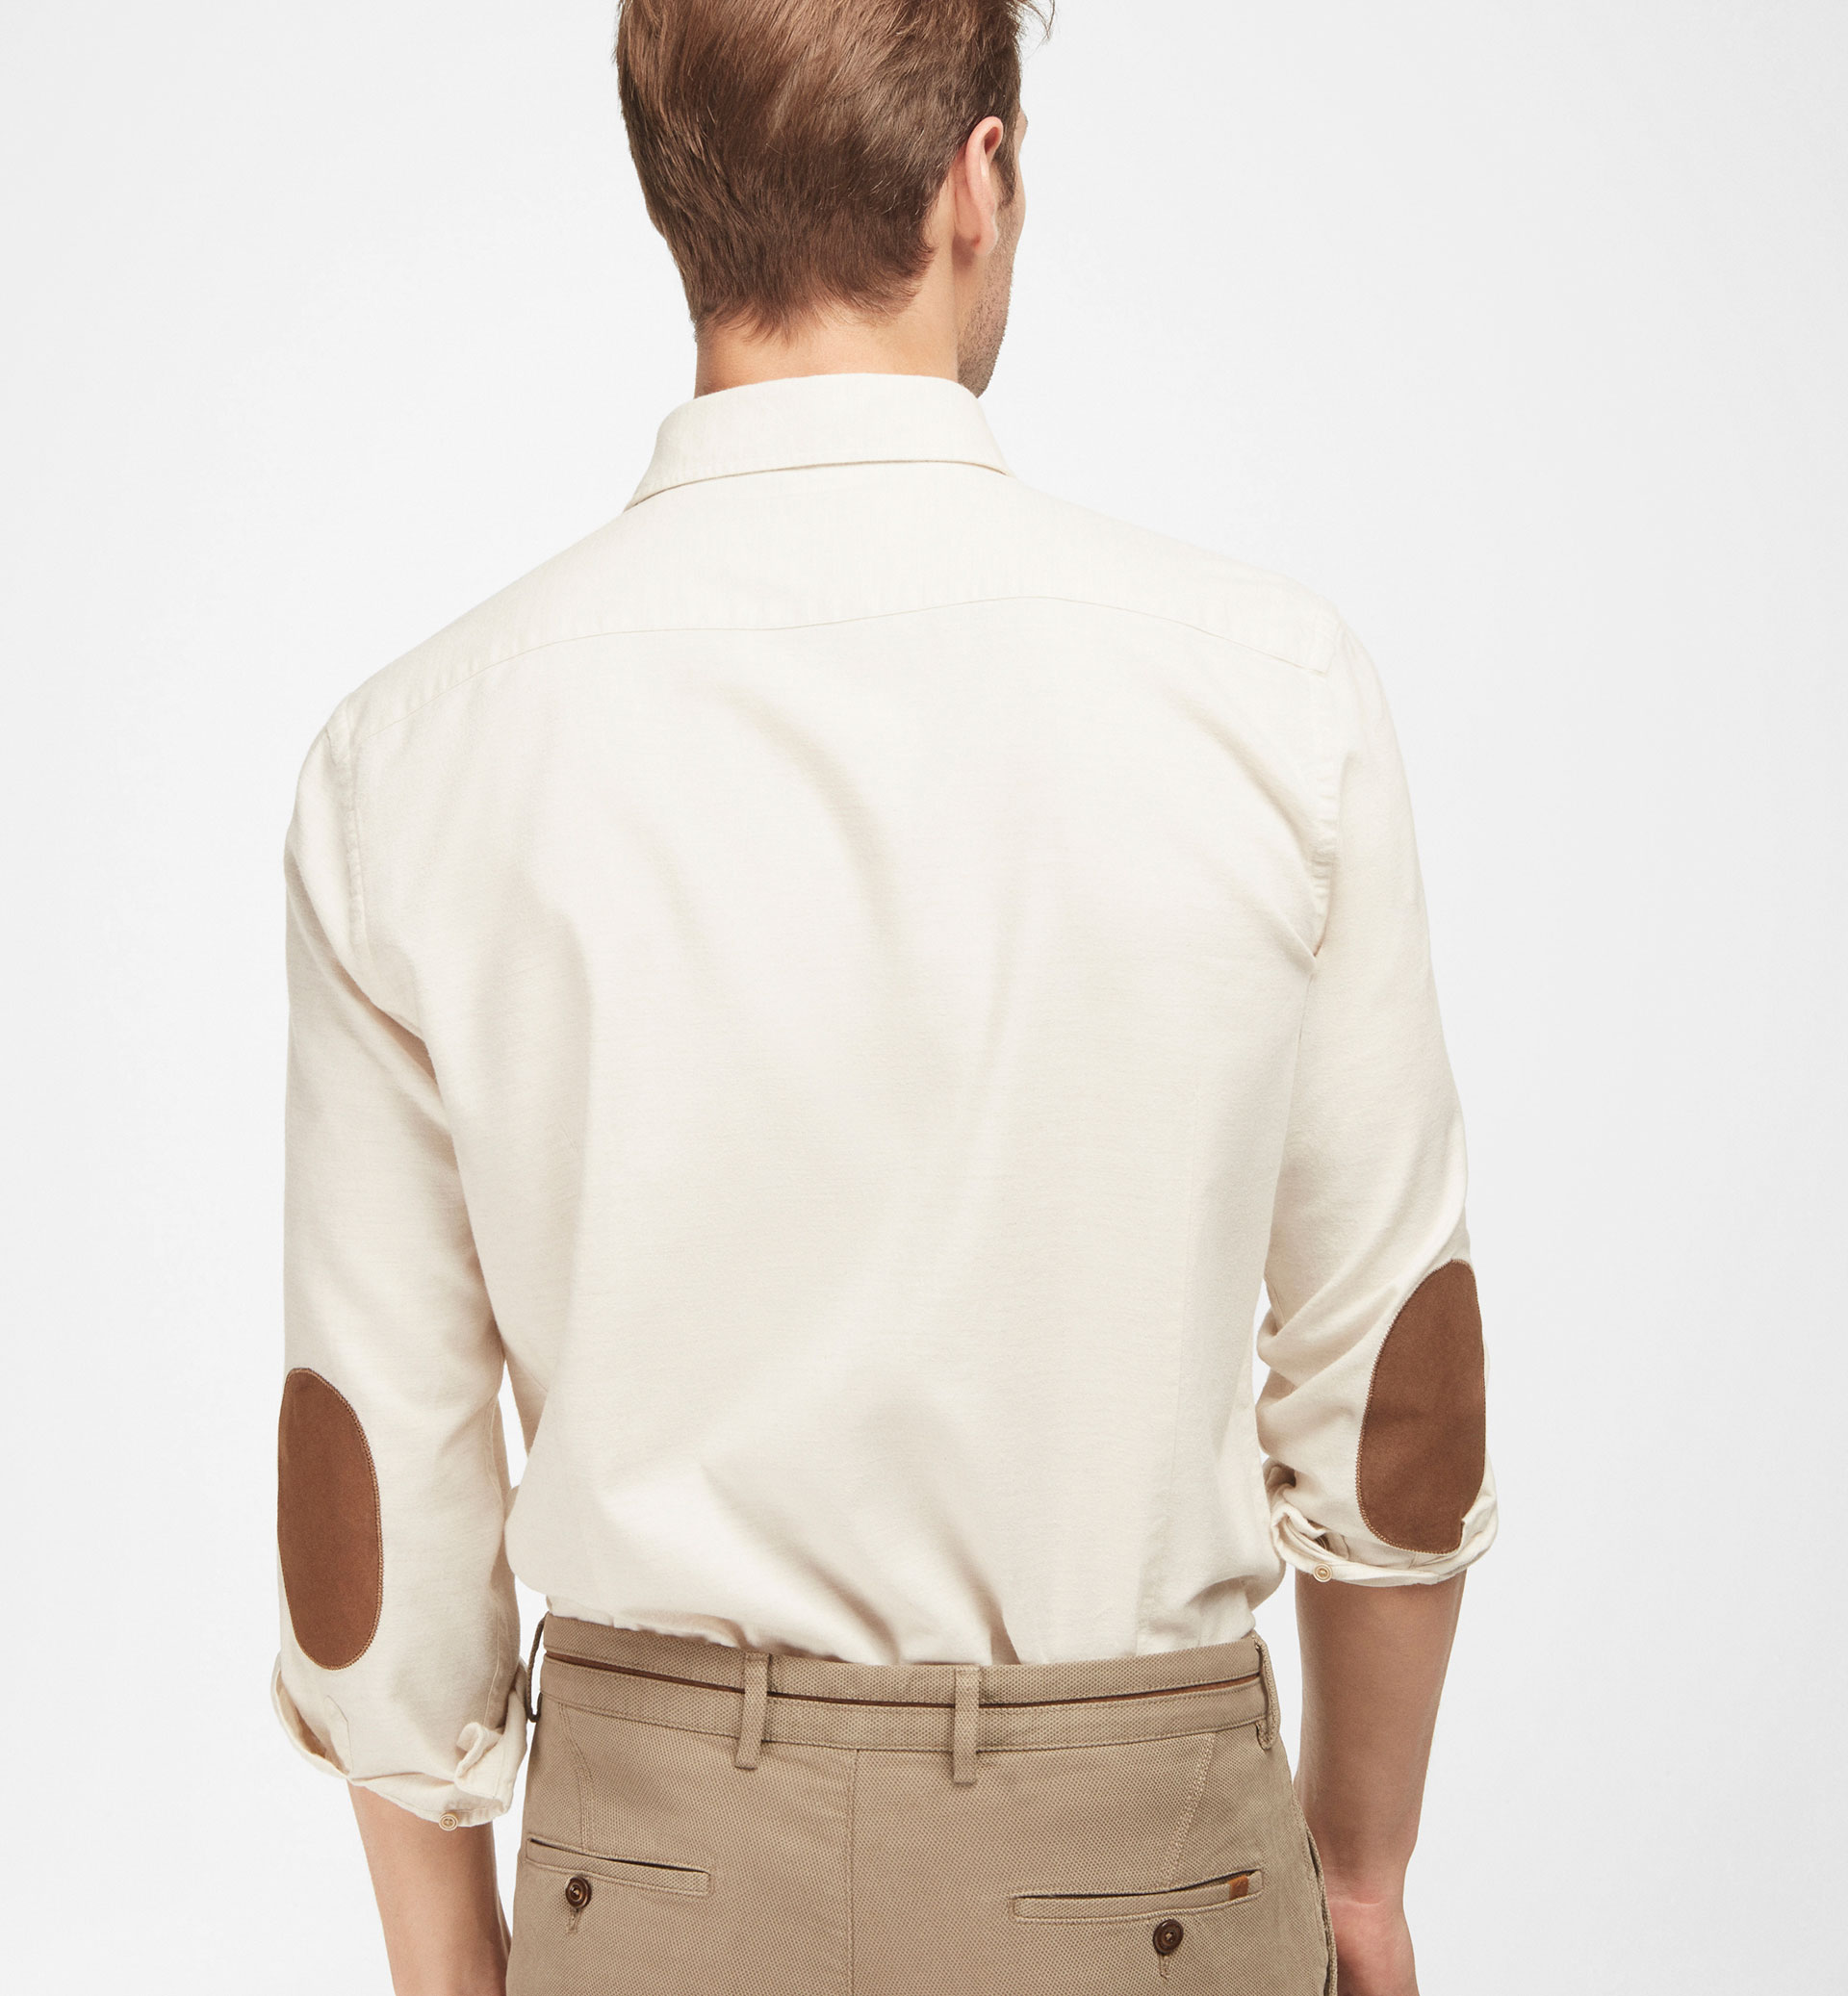 BEIGE SLIM-FIT SHIRT WITH LEATHER ELBOW PATCHES